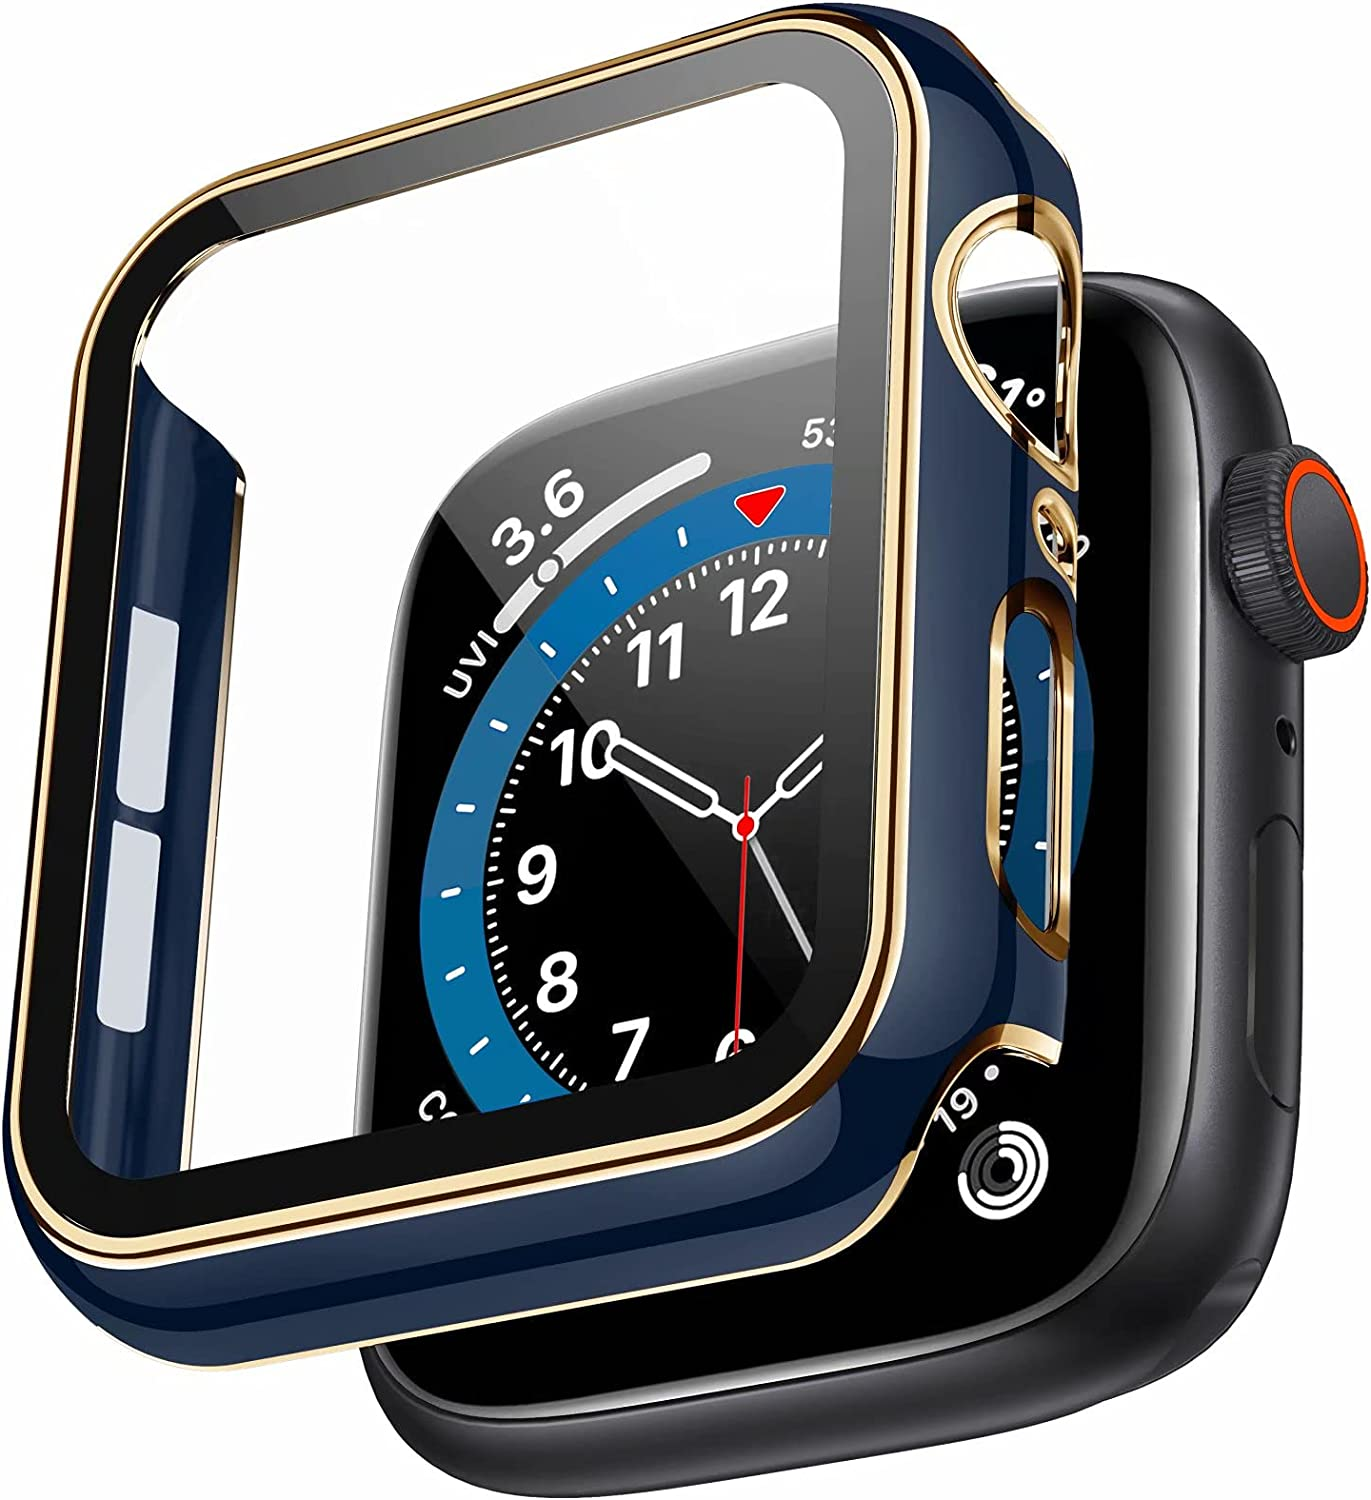 Swhatty Case Compatible with Apple Watch 44mm 40mm 42mm 38mm, Bumper Built in Tempered Glass Screen Protector, Protective Cover for iWatch Series SE 6 5 4 3 2 1 Women Men (Light Gold Edge Blue, 38mm)